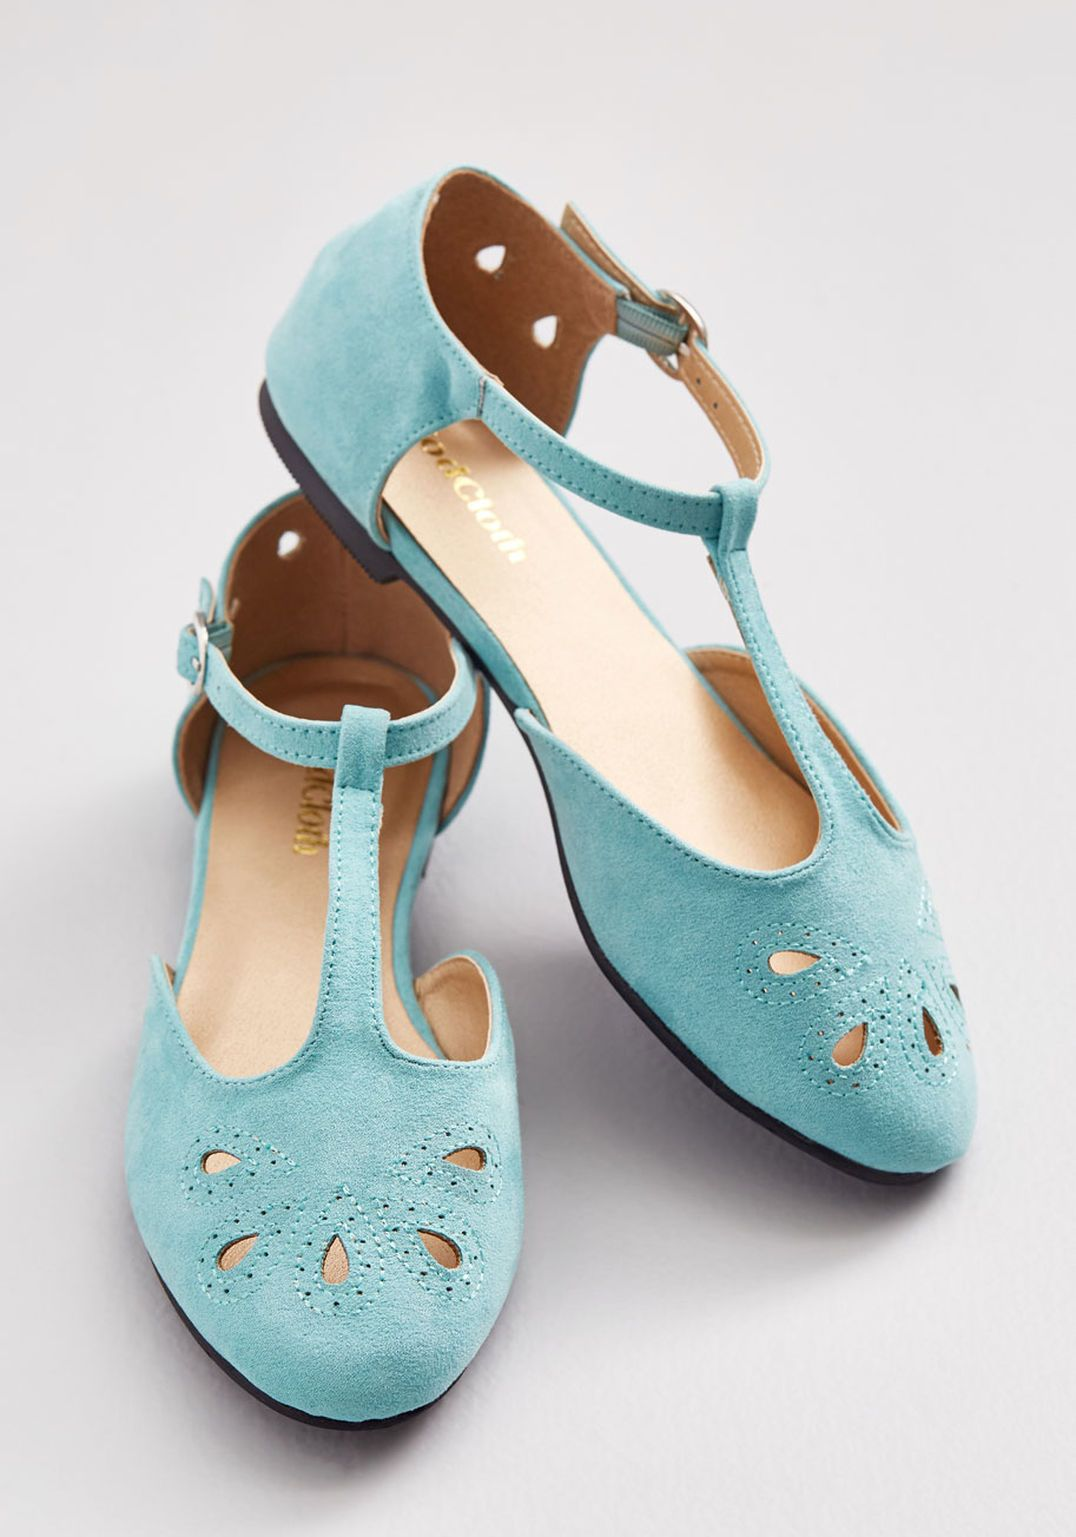 b9df86c69e The Zest Is History T-Strap Flat in 2019 | Clothesss | T strap flats ...